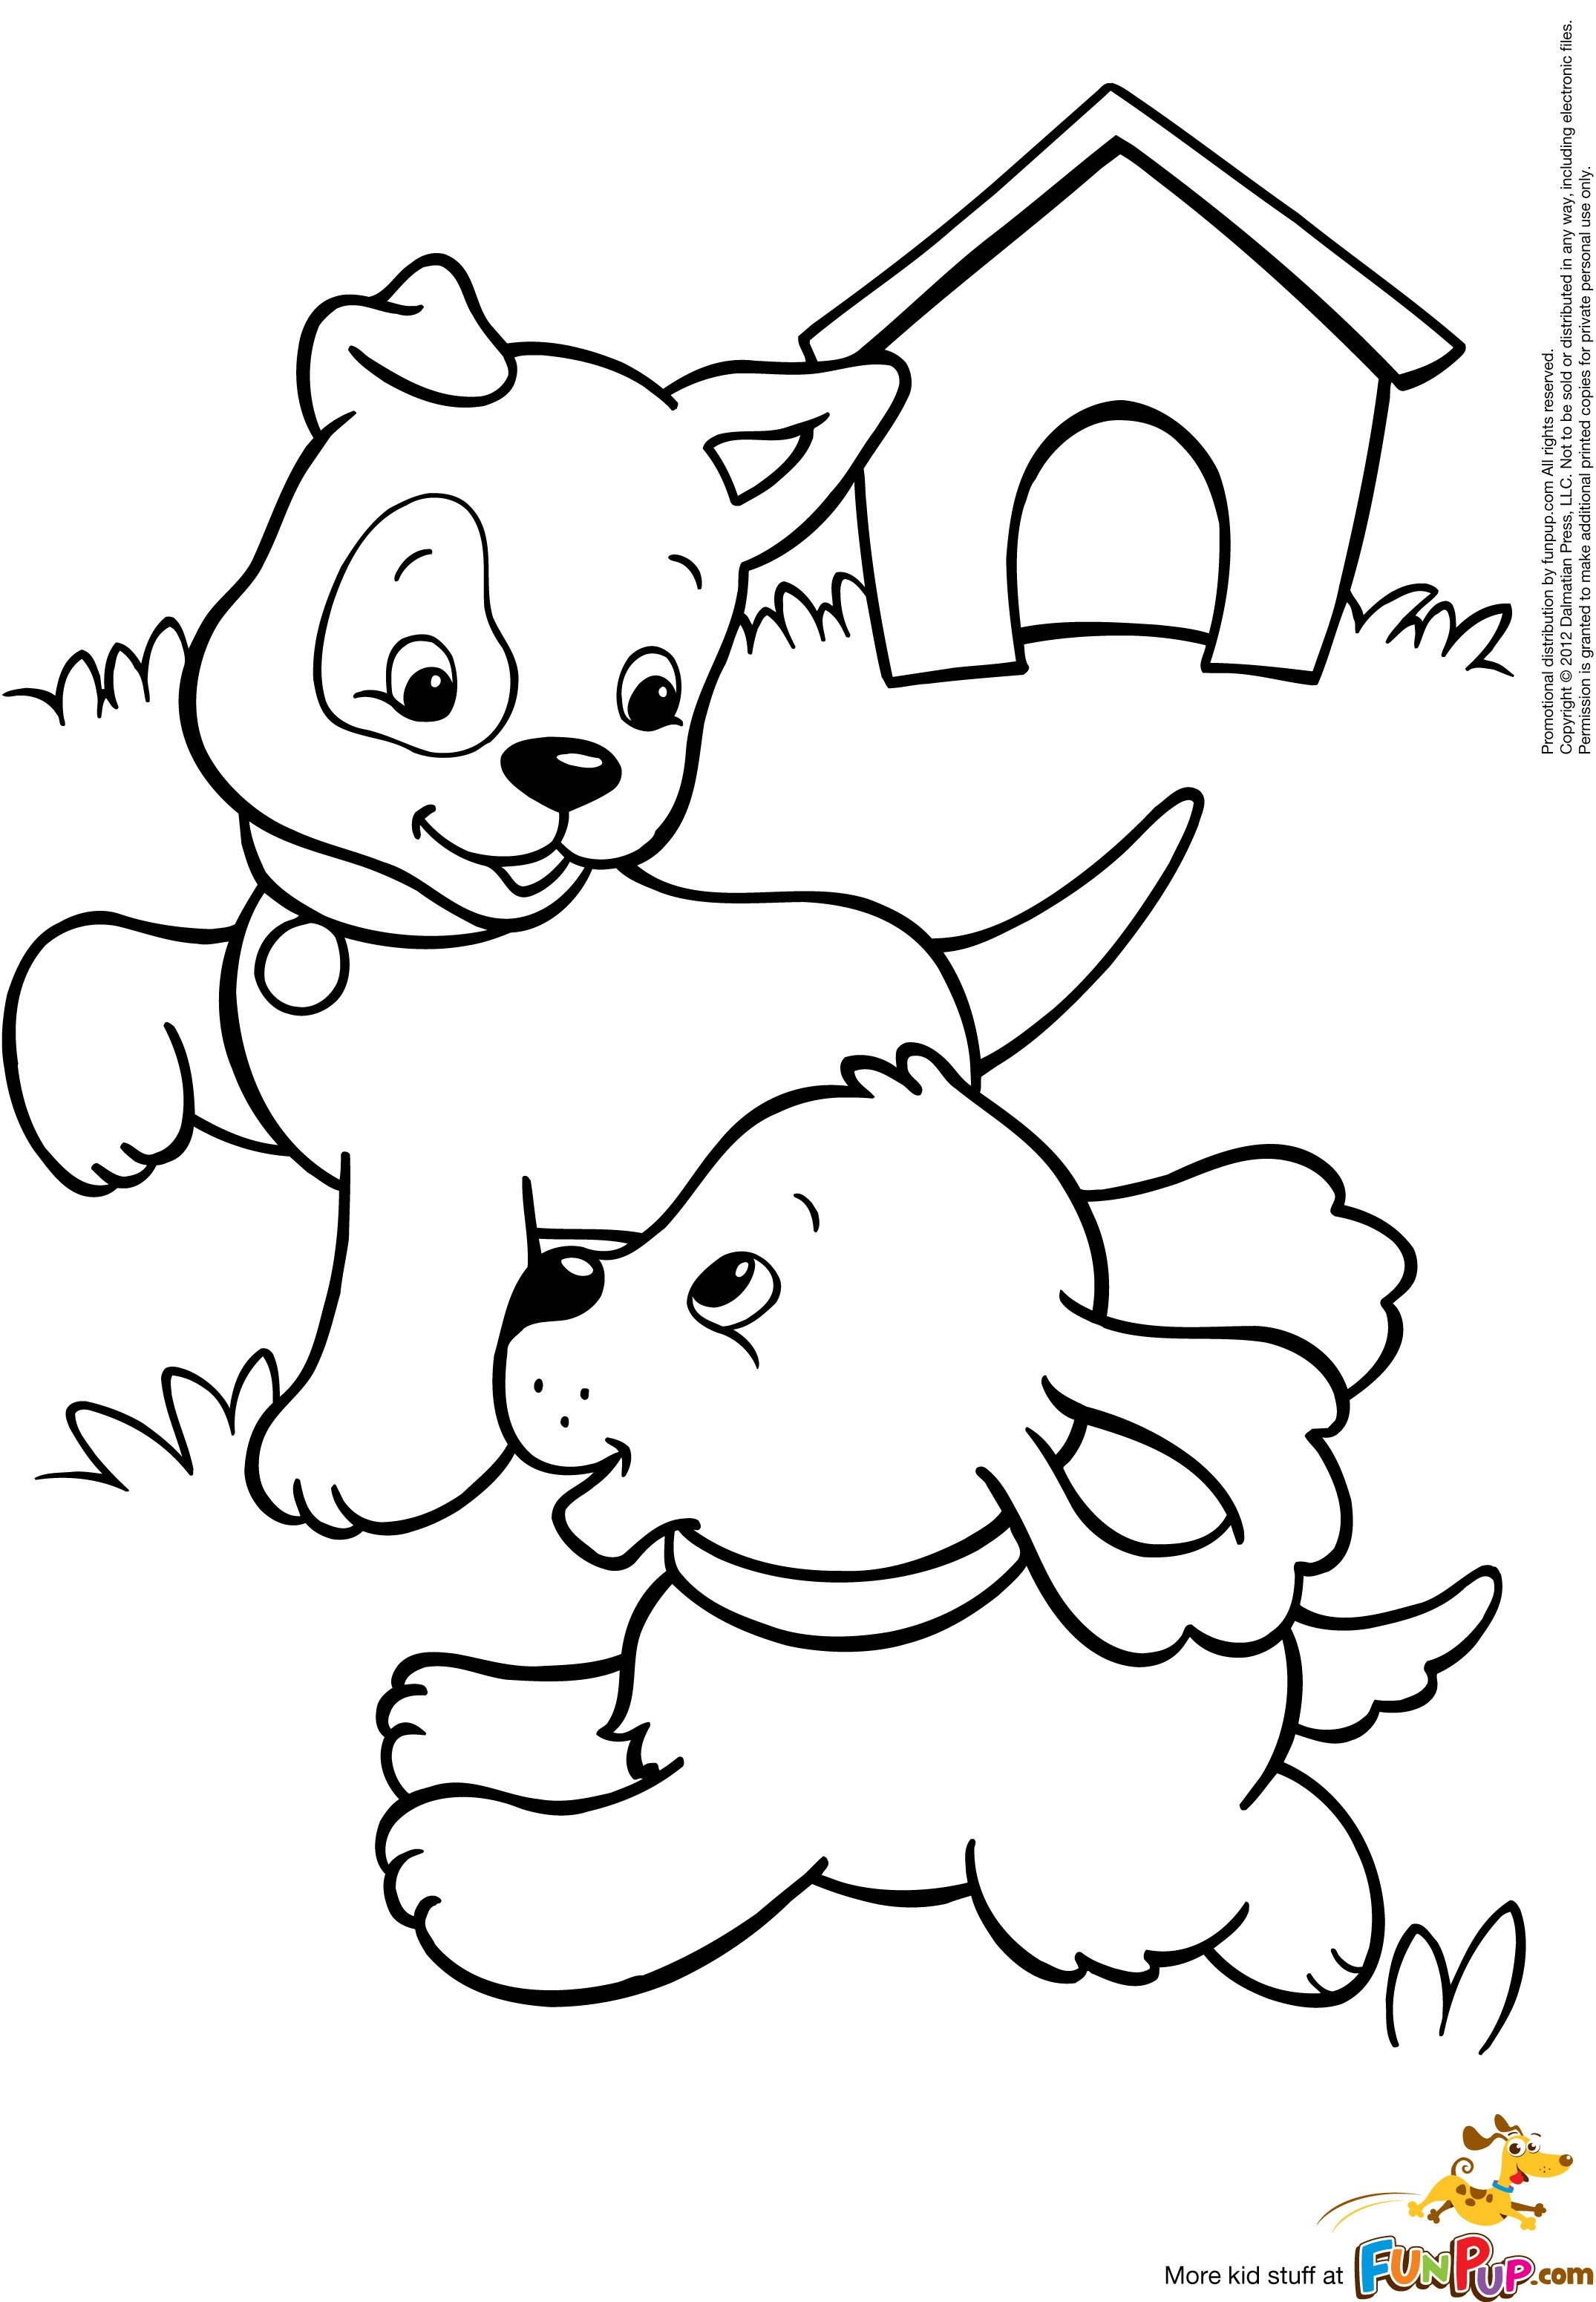 realistic puppy coloring pages realistic puppy coloring pages coloring home pages realistic puppy coloring